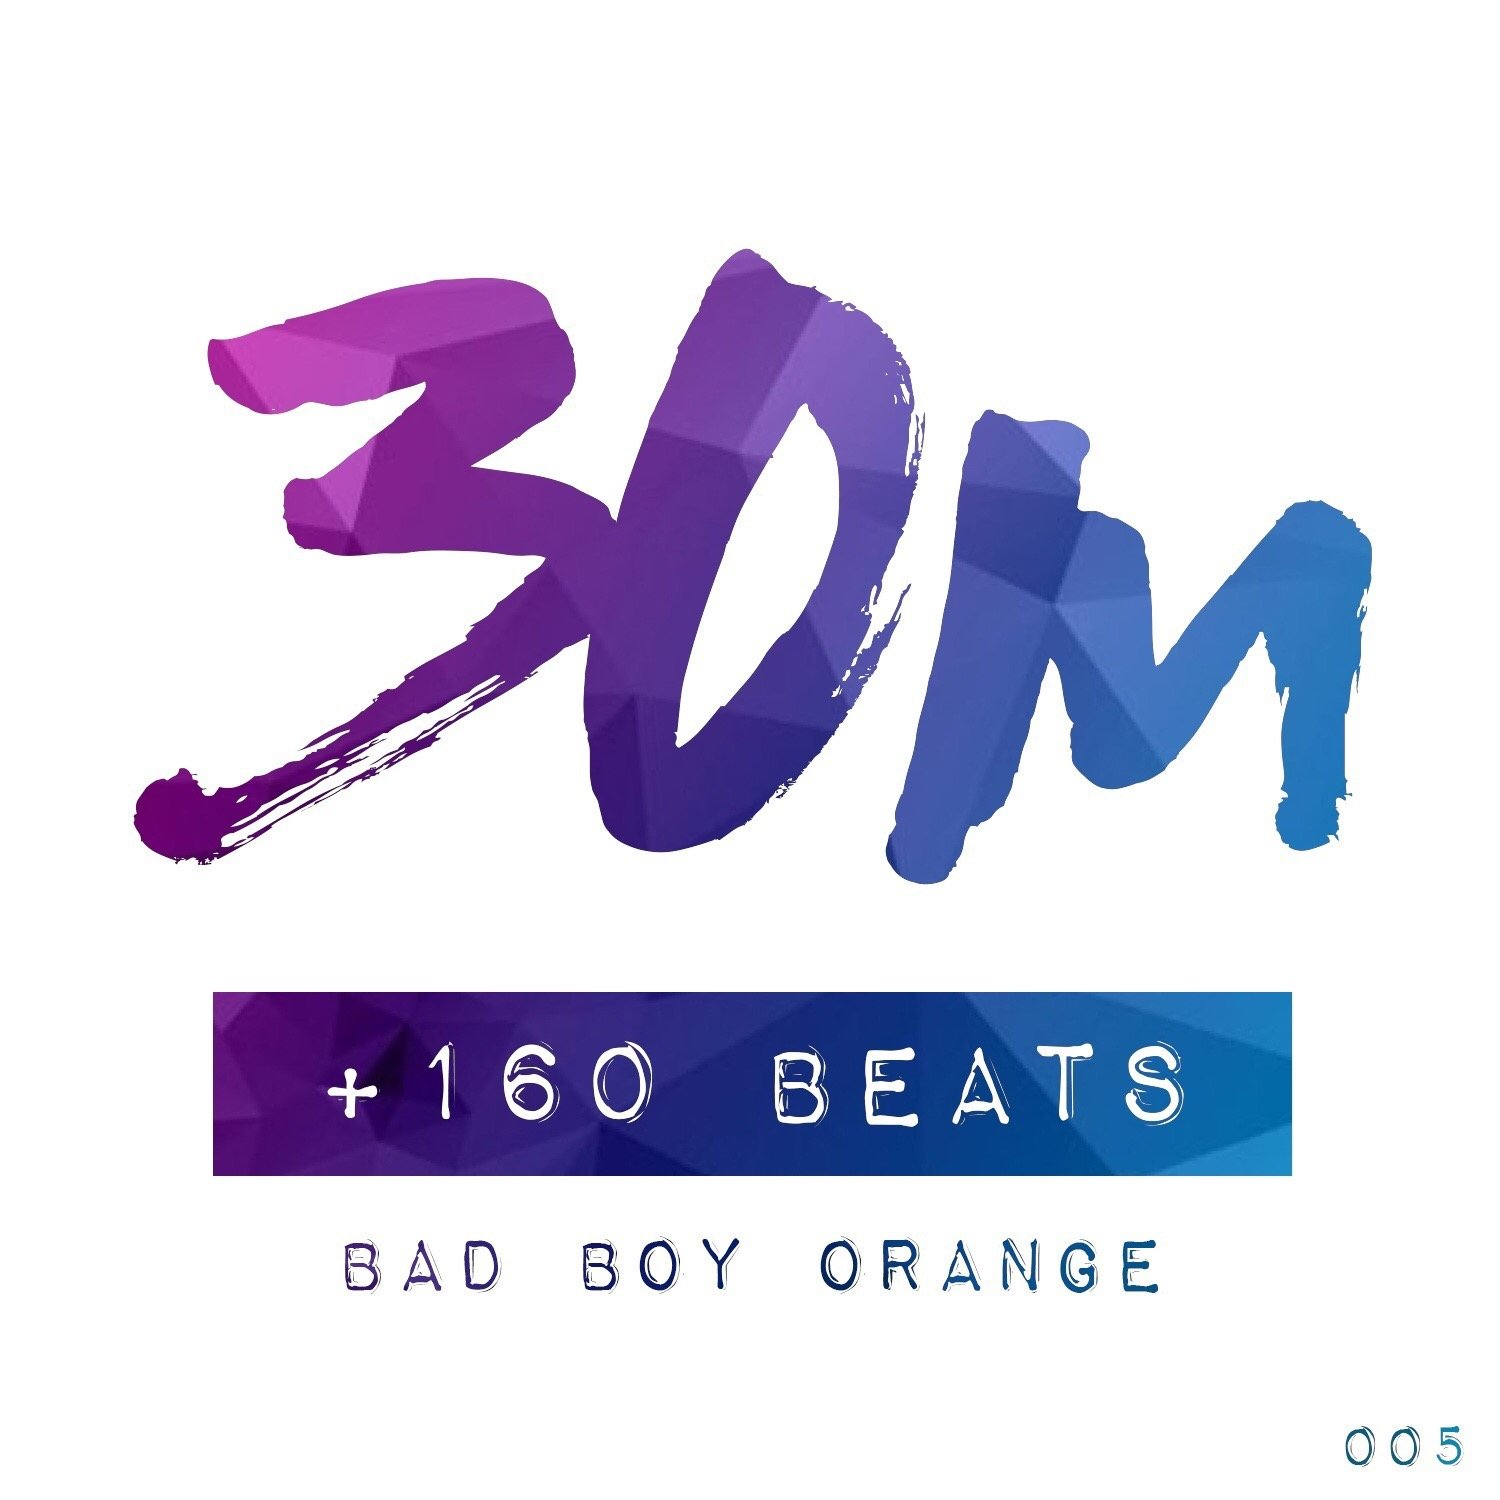 005: +160 Beats - Bad Boy Orange (Buenos Aires)